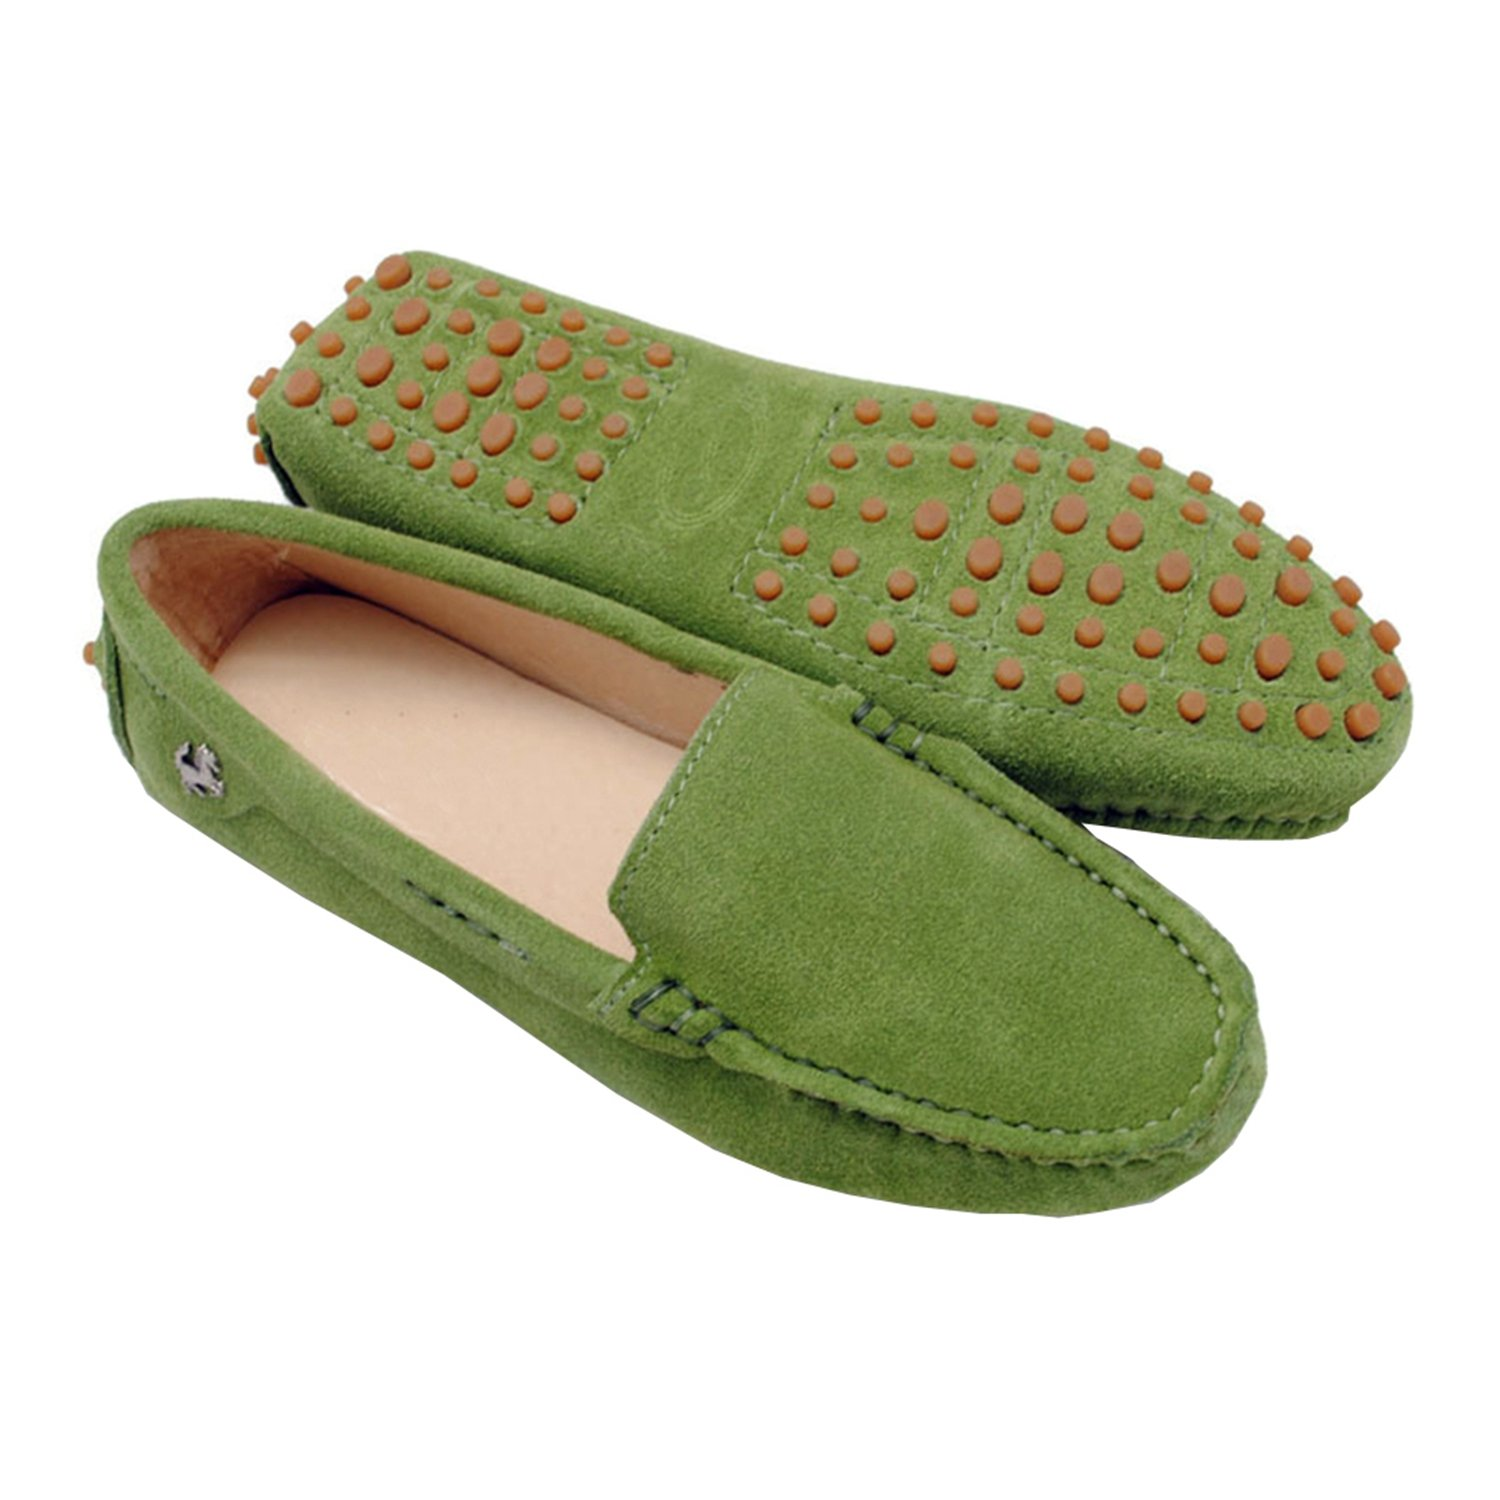 Minishion TYB9601 Women's Round Toe Loafers Boat Shoes Ballet Flats Loafers B071W96R3J 5.5 B(M) US|Light Green